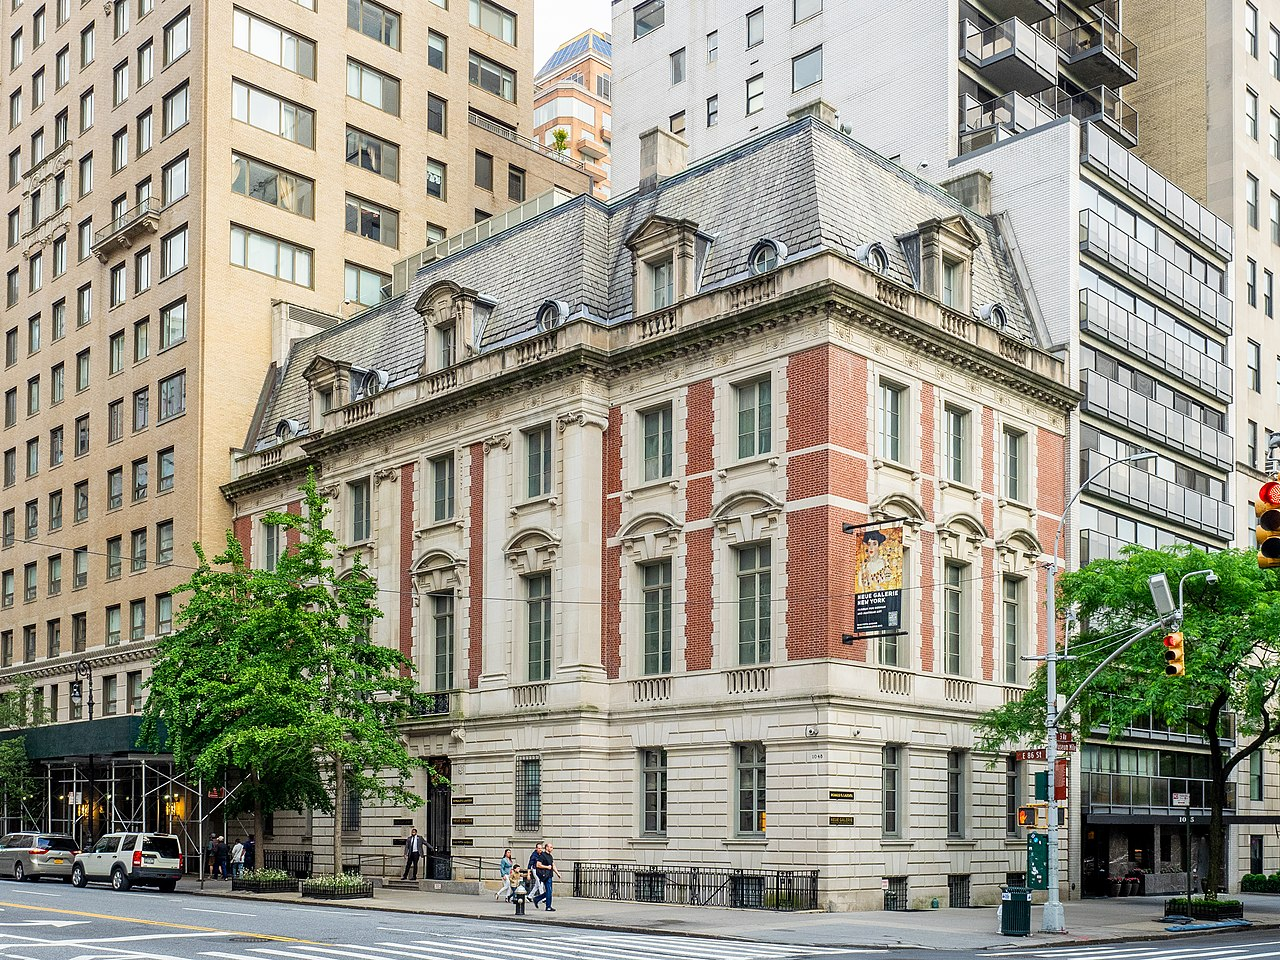 The William Star Miller House, home of the Neue Galerie.